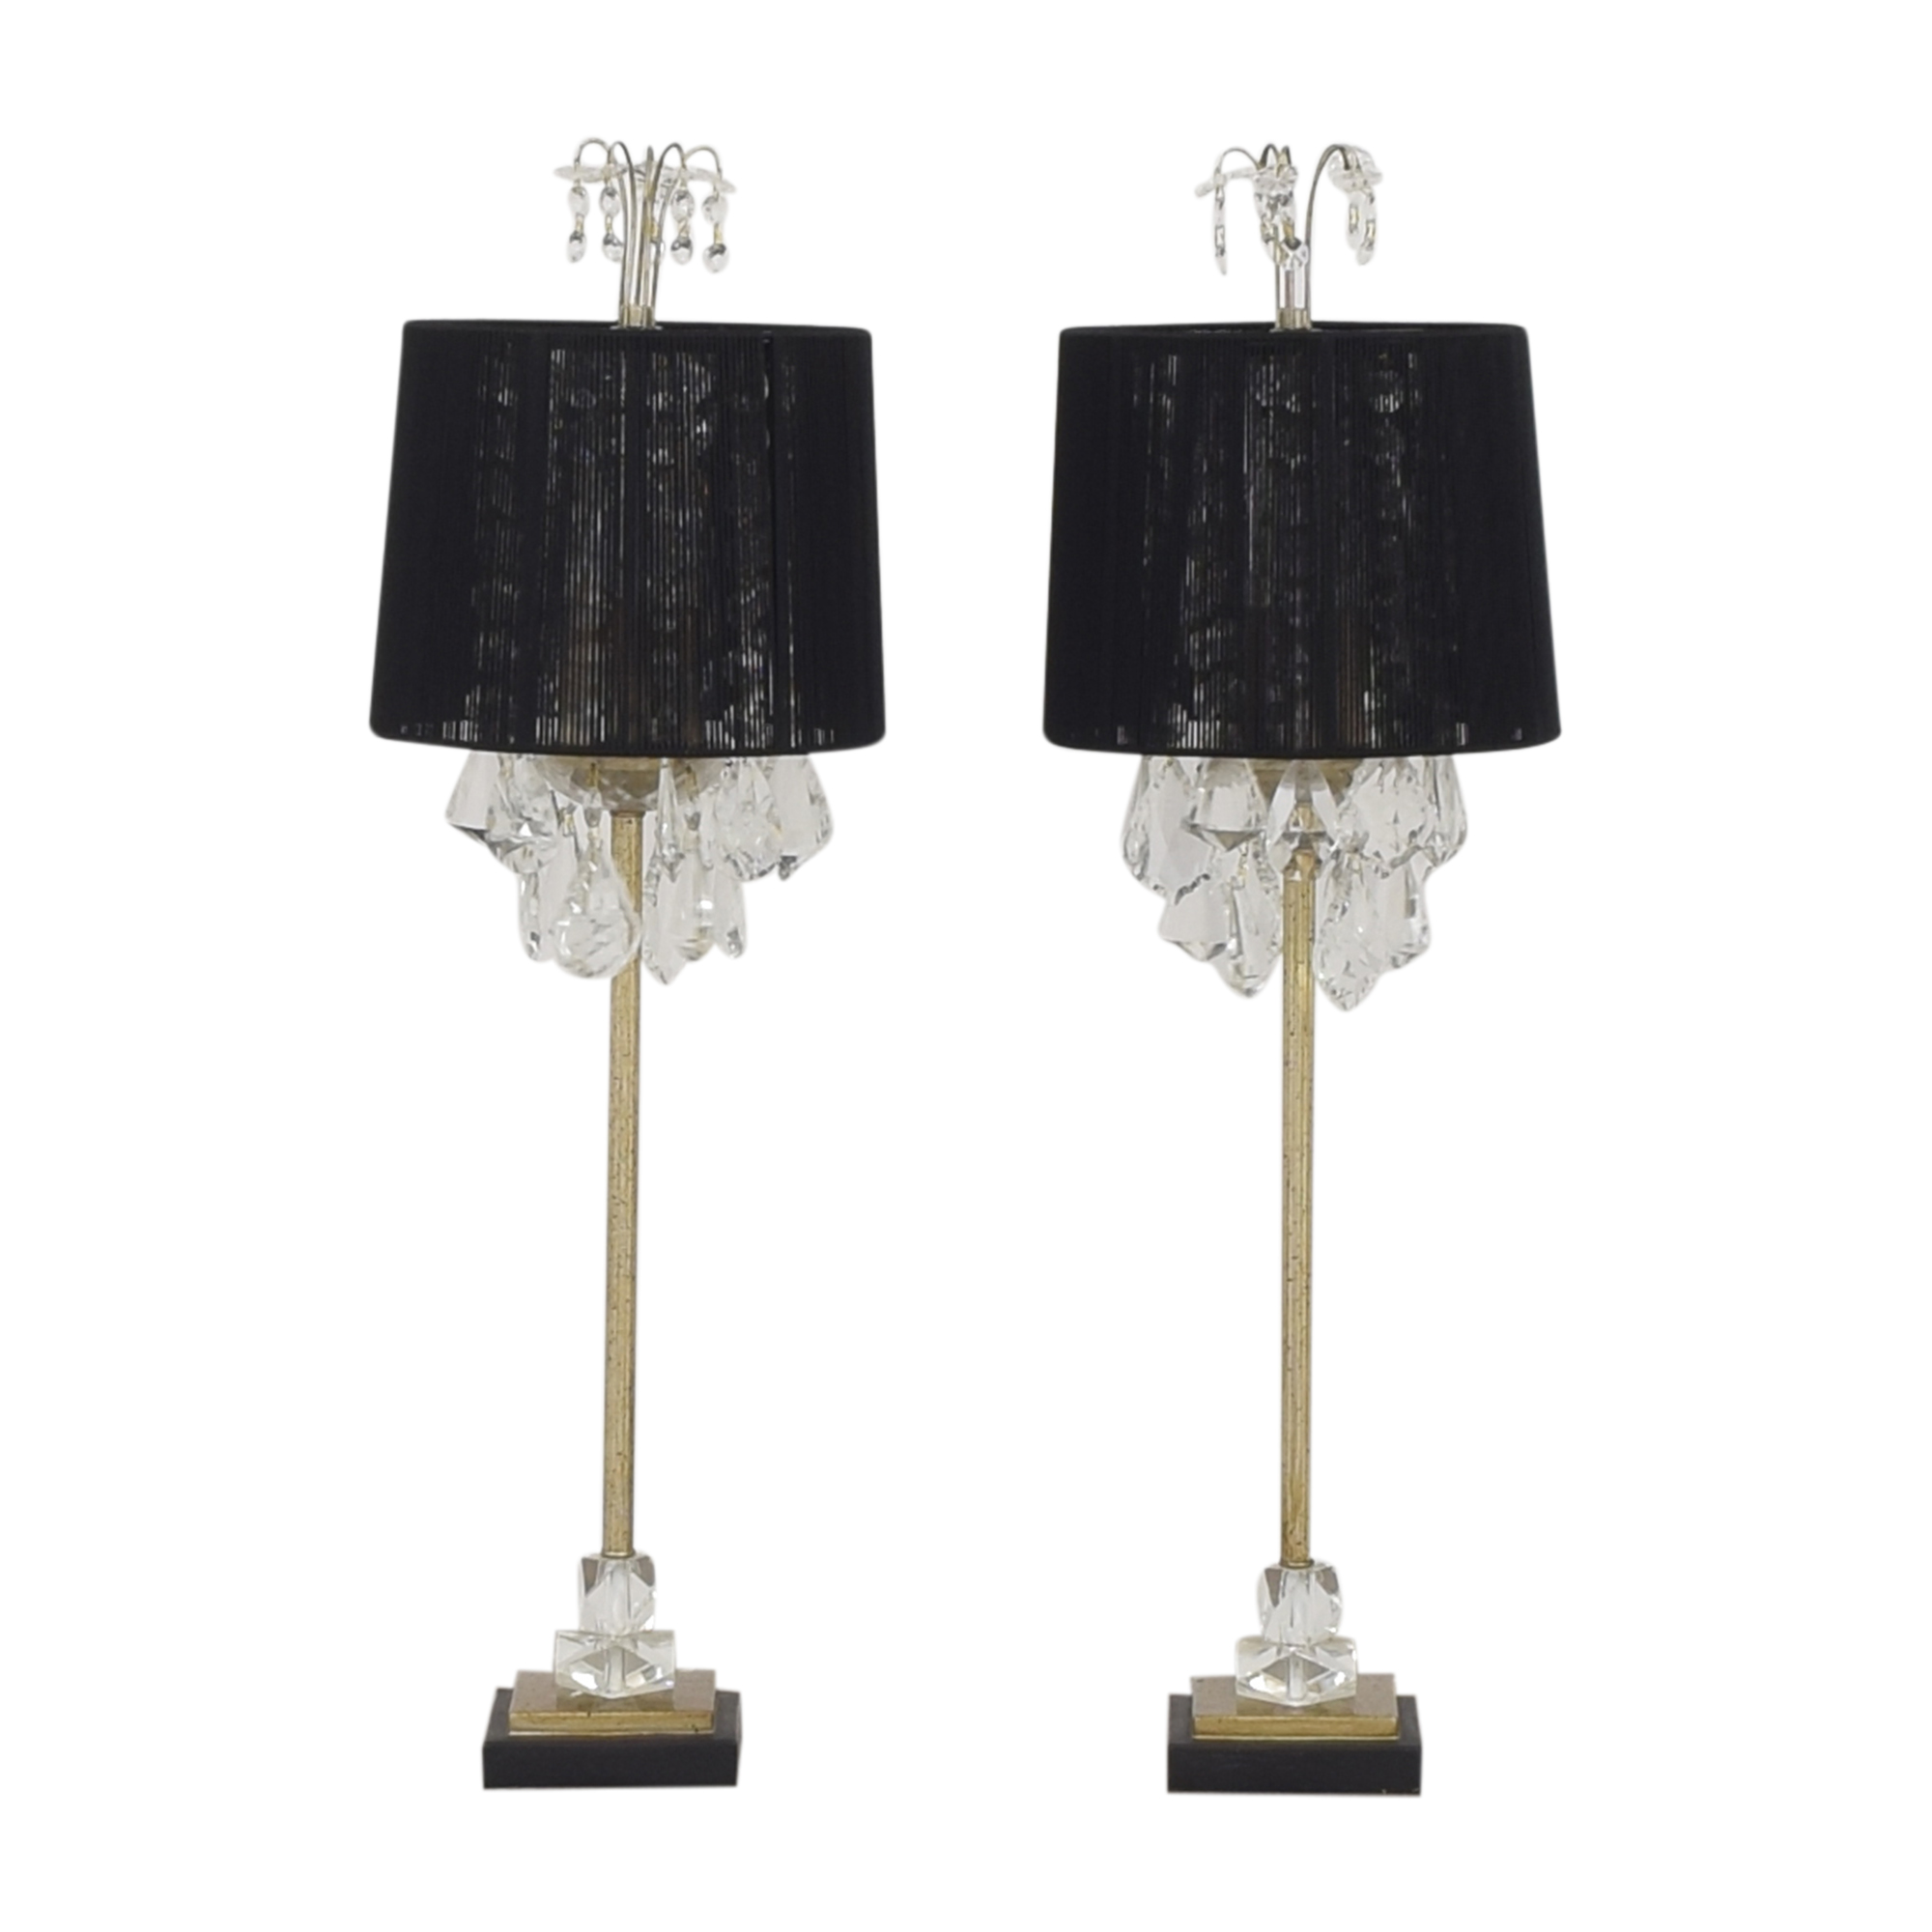 Horchow Horchow Christella Buffet Lamps for sale